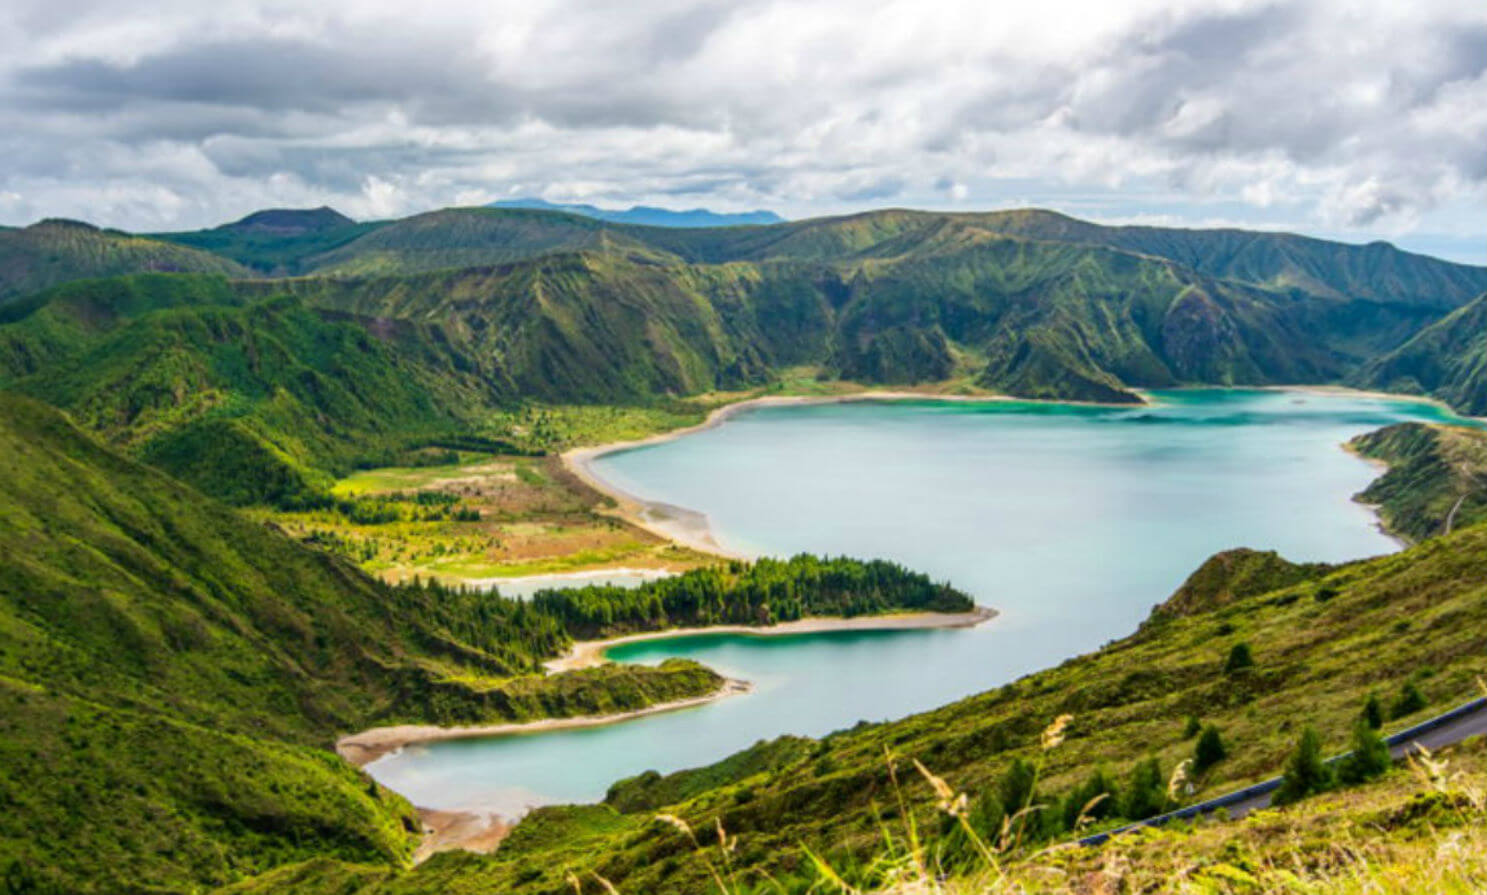 SAO MIGUEL, AZORES itinerary